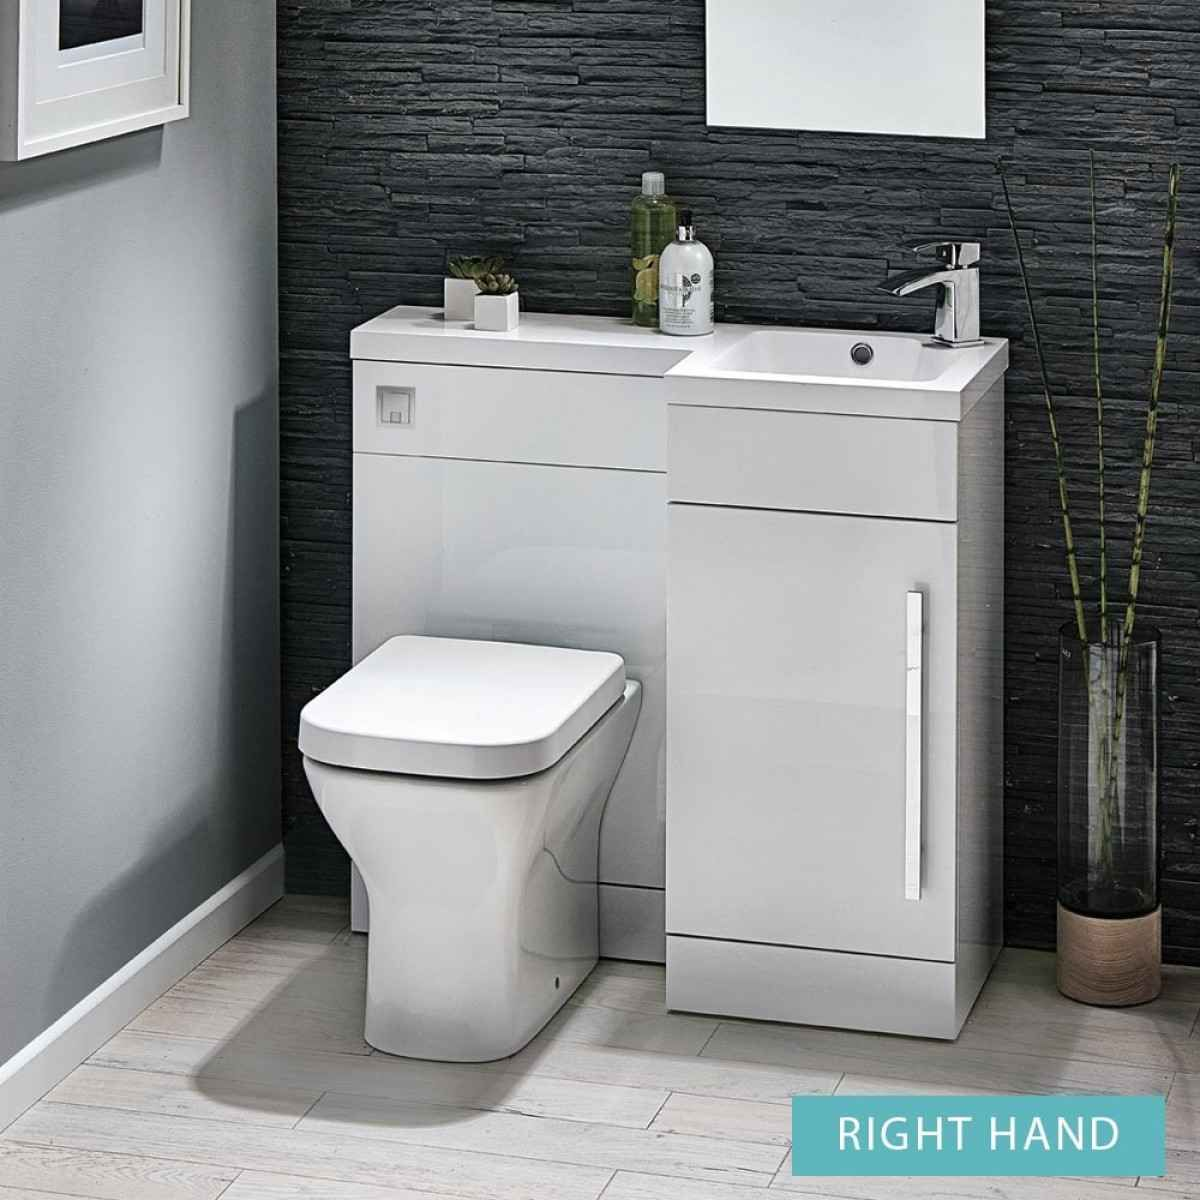 Harbour Icon 900mm Spacesaving Combination Bathroom Toilet Sink